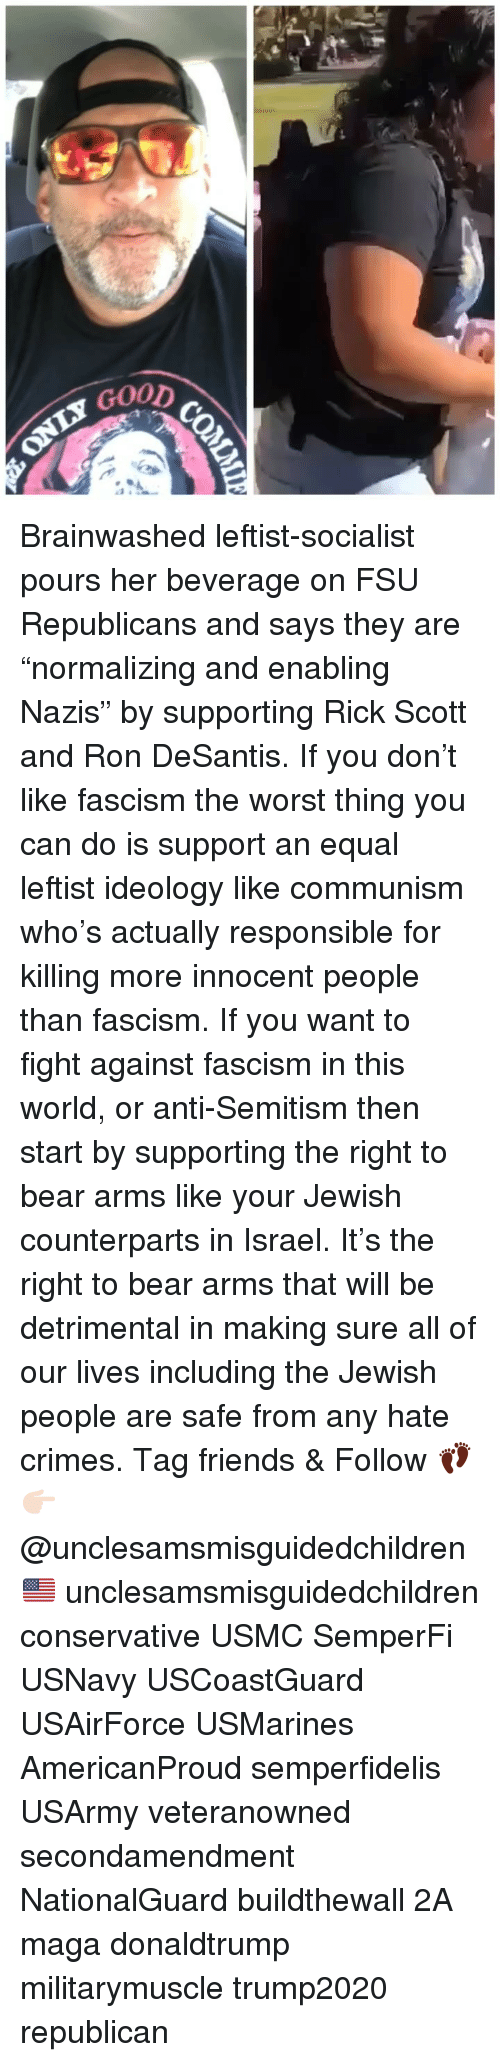 """Brainwashed: GoOD Brainwashed leftist-socialist pours her beverage on FSU Republicans and says they are """"normalizing and enabling Nazis"""" by supporting Rick Scott and Ron DeSantis. If you don't like fascism the worst thing you can do is support an equal leftist ideology like communism who's actually responsible for killing more innocent people than fascism. If you want to fight against fascism in this world, or anti-Semitism then start by supporting the right to bear arms like your Jewish counterparts in Israel. It's the right to bear arms that will be detrimental in making sure all of our lives including the Jewish people are safe from any hate crimes. Tag friends & Follow 👣 👉🏻 @unclesamsmisguidedchildren 🇺🇸 unclesamsmisguidedchildren conservative USMC SemperFi USNavy USCoastGuard USAirForce USMarines AmericanProud semperfidelis USArmy veteranowned secondamendment NationalGuard buildthewall 2A maga donaldtrump militarymuscle trump2020 republican"""